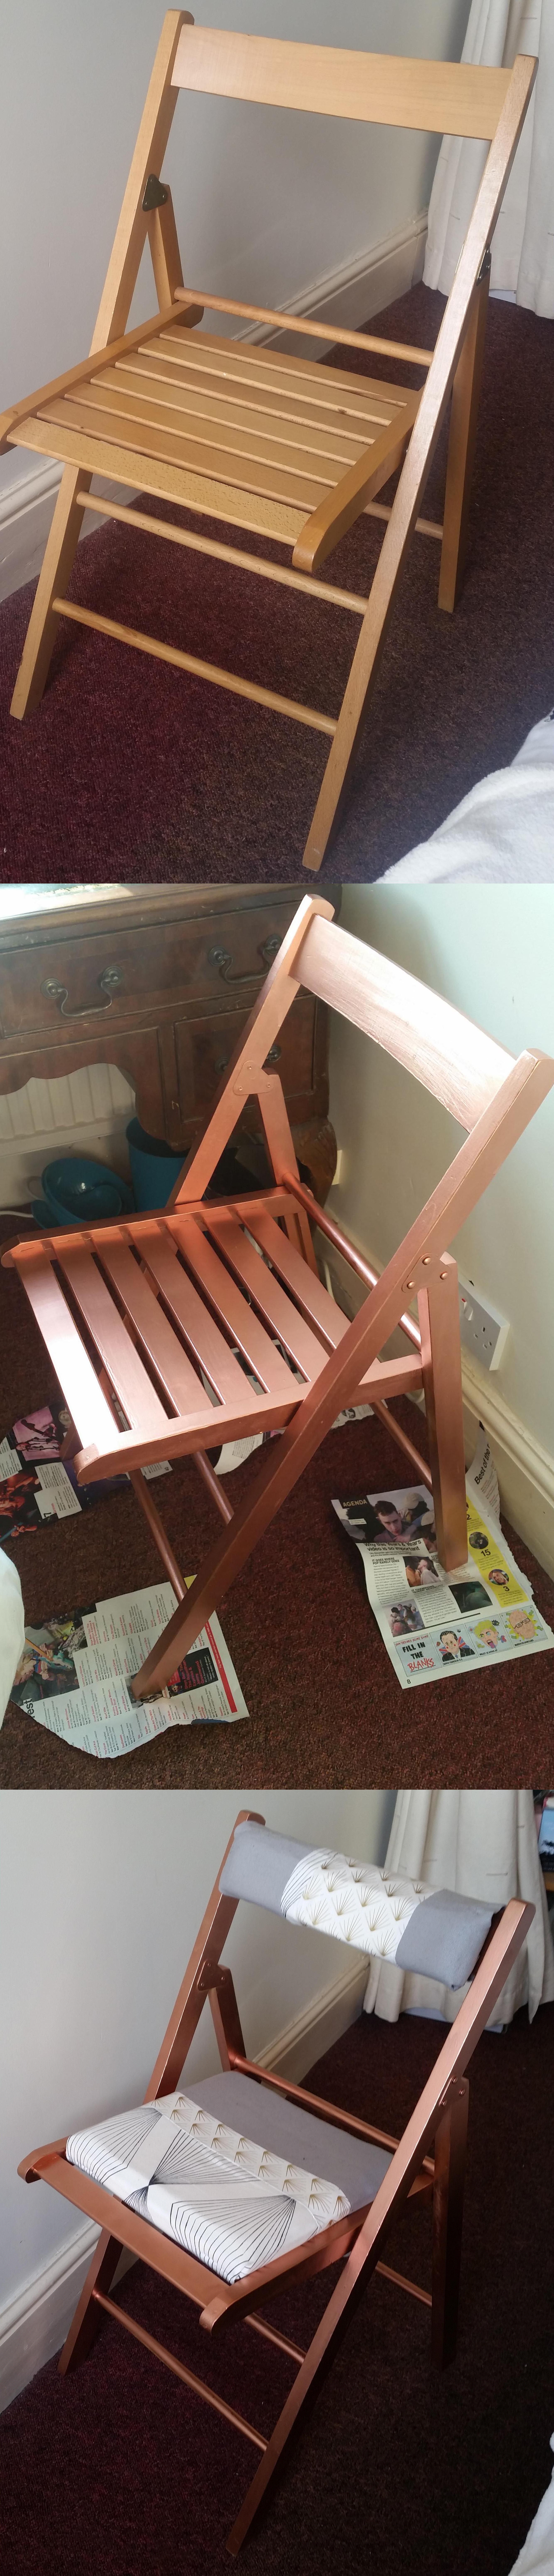 Wooden folding chair makeover Boring to rose gold grey